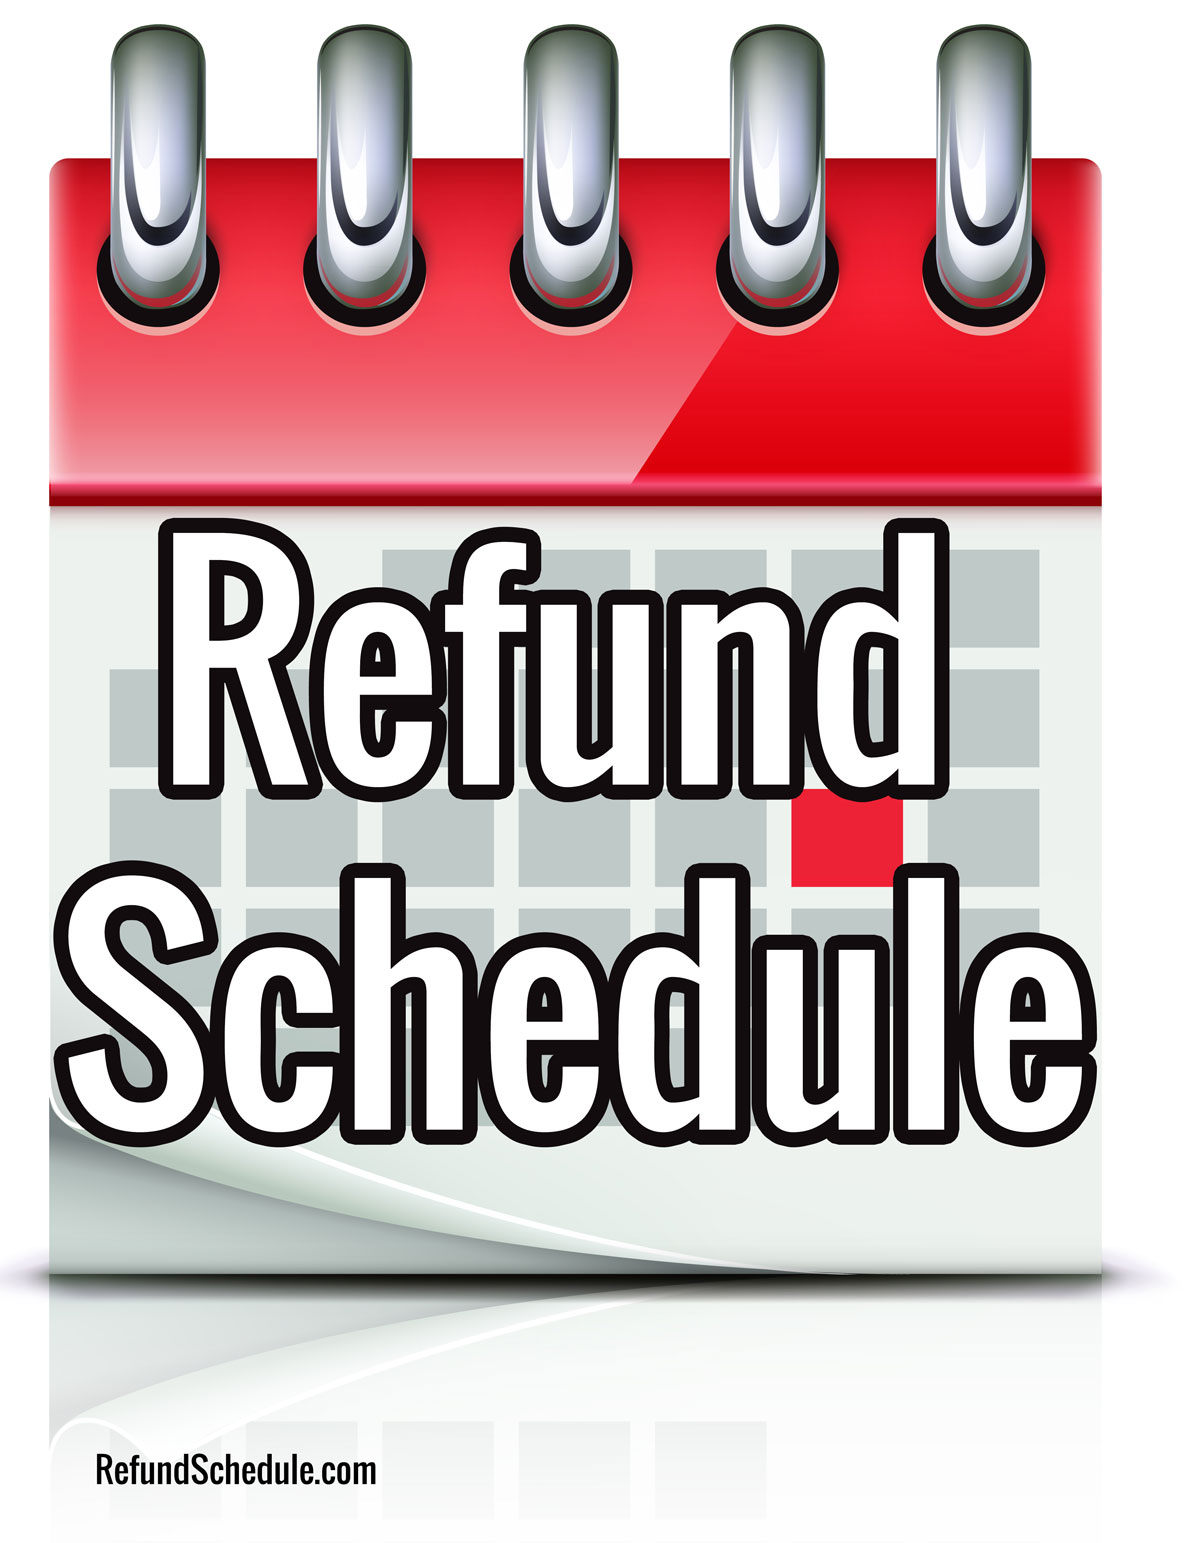 Its official today the irs announced the tax season 2015 start today the irs announced the tax season 2015 start date irs refund schedule 2018 falaconquin